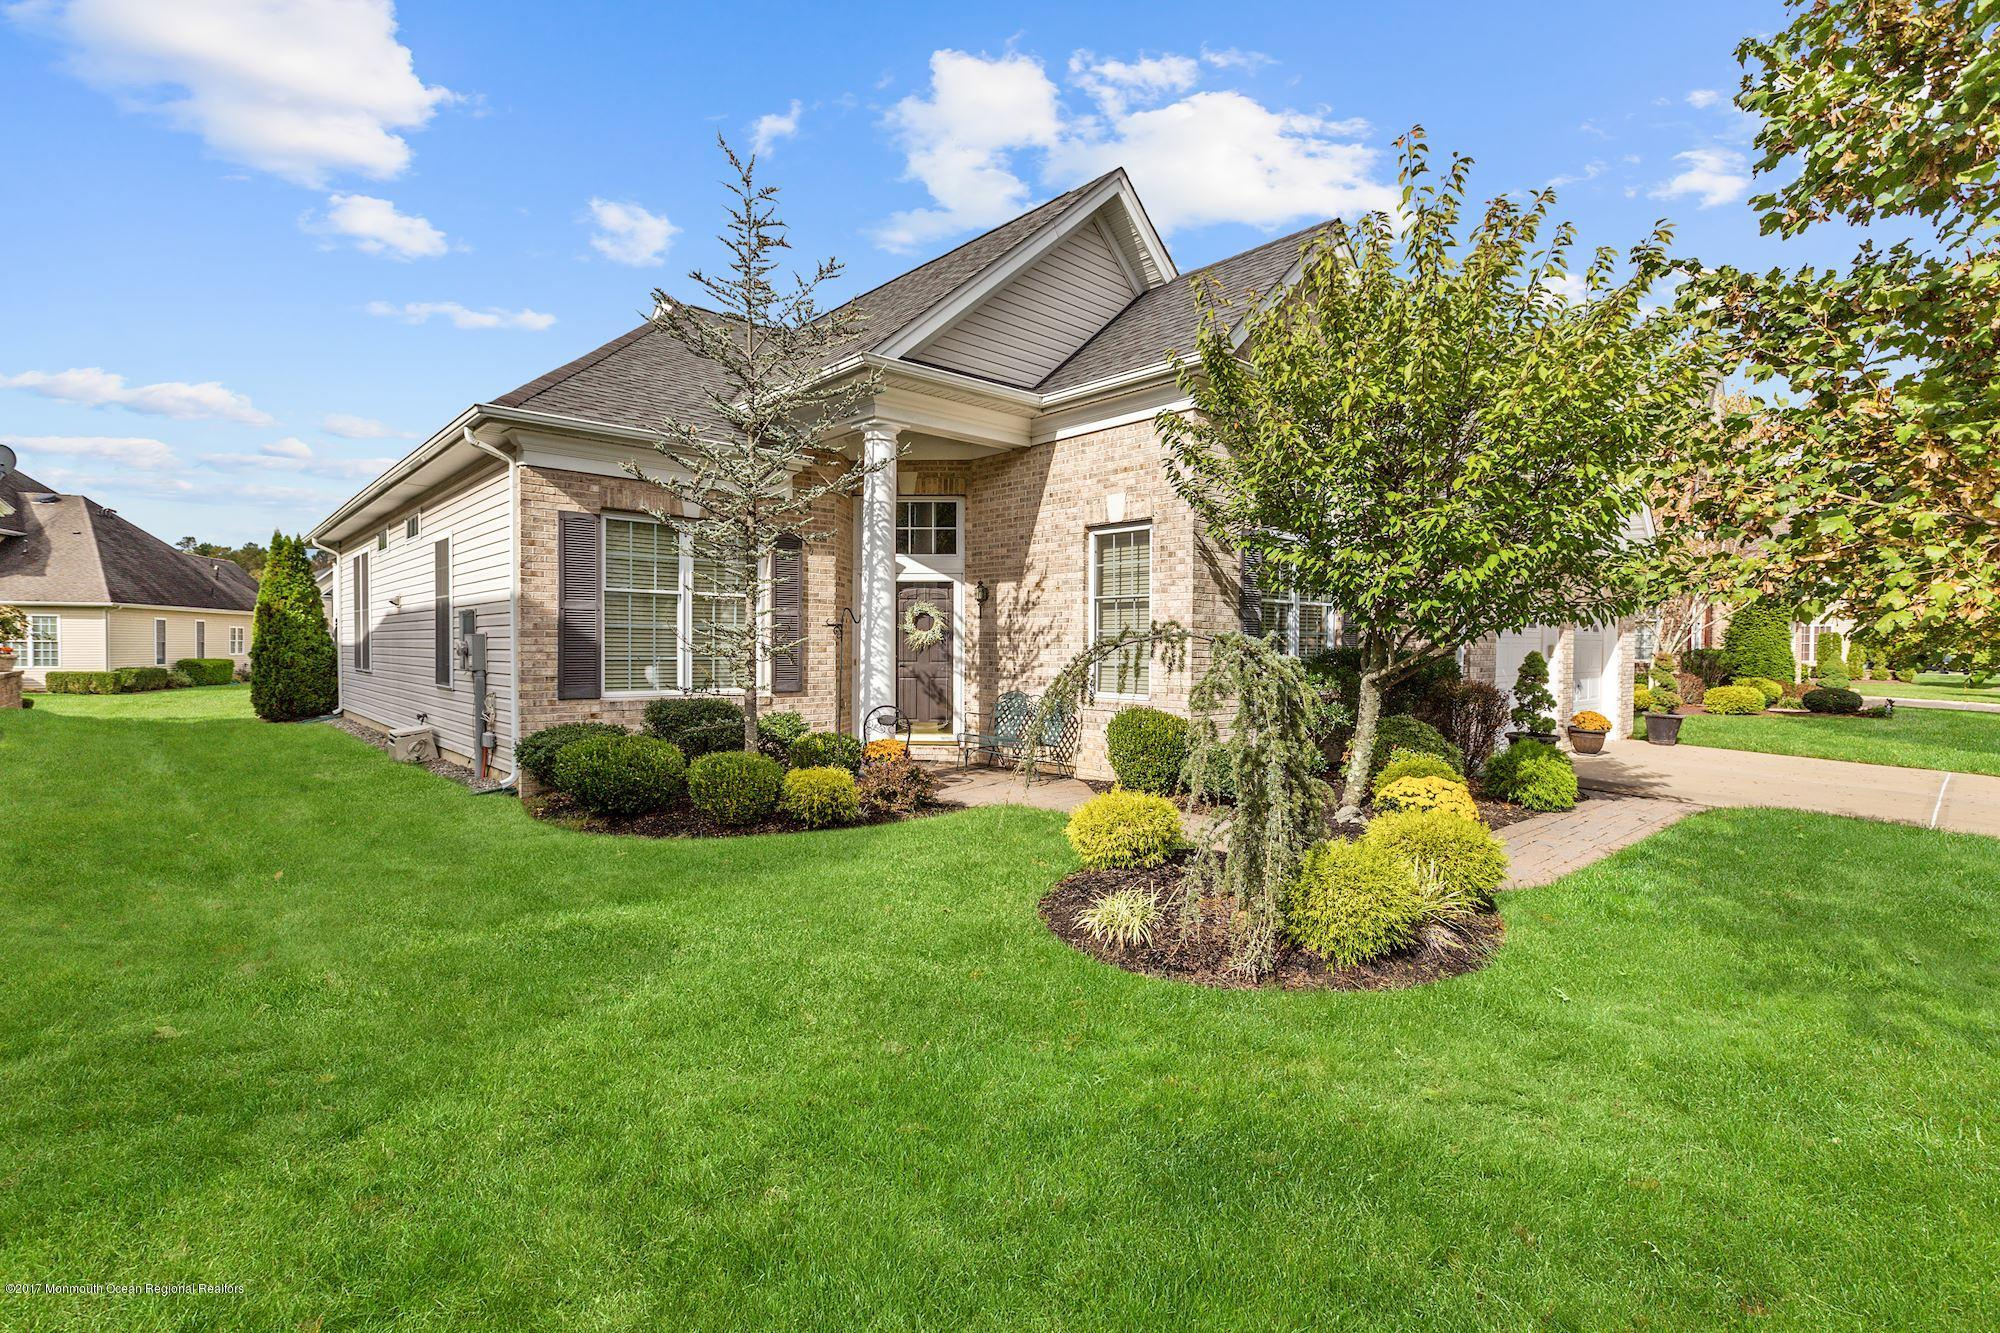 Homes for Sale with Tennis Courts